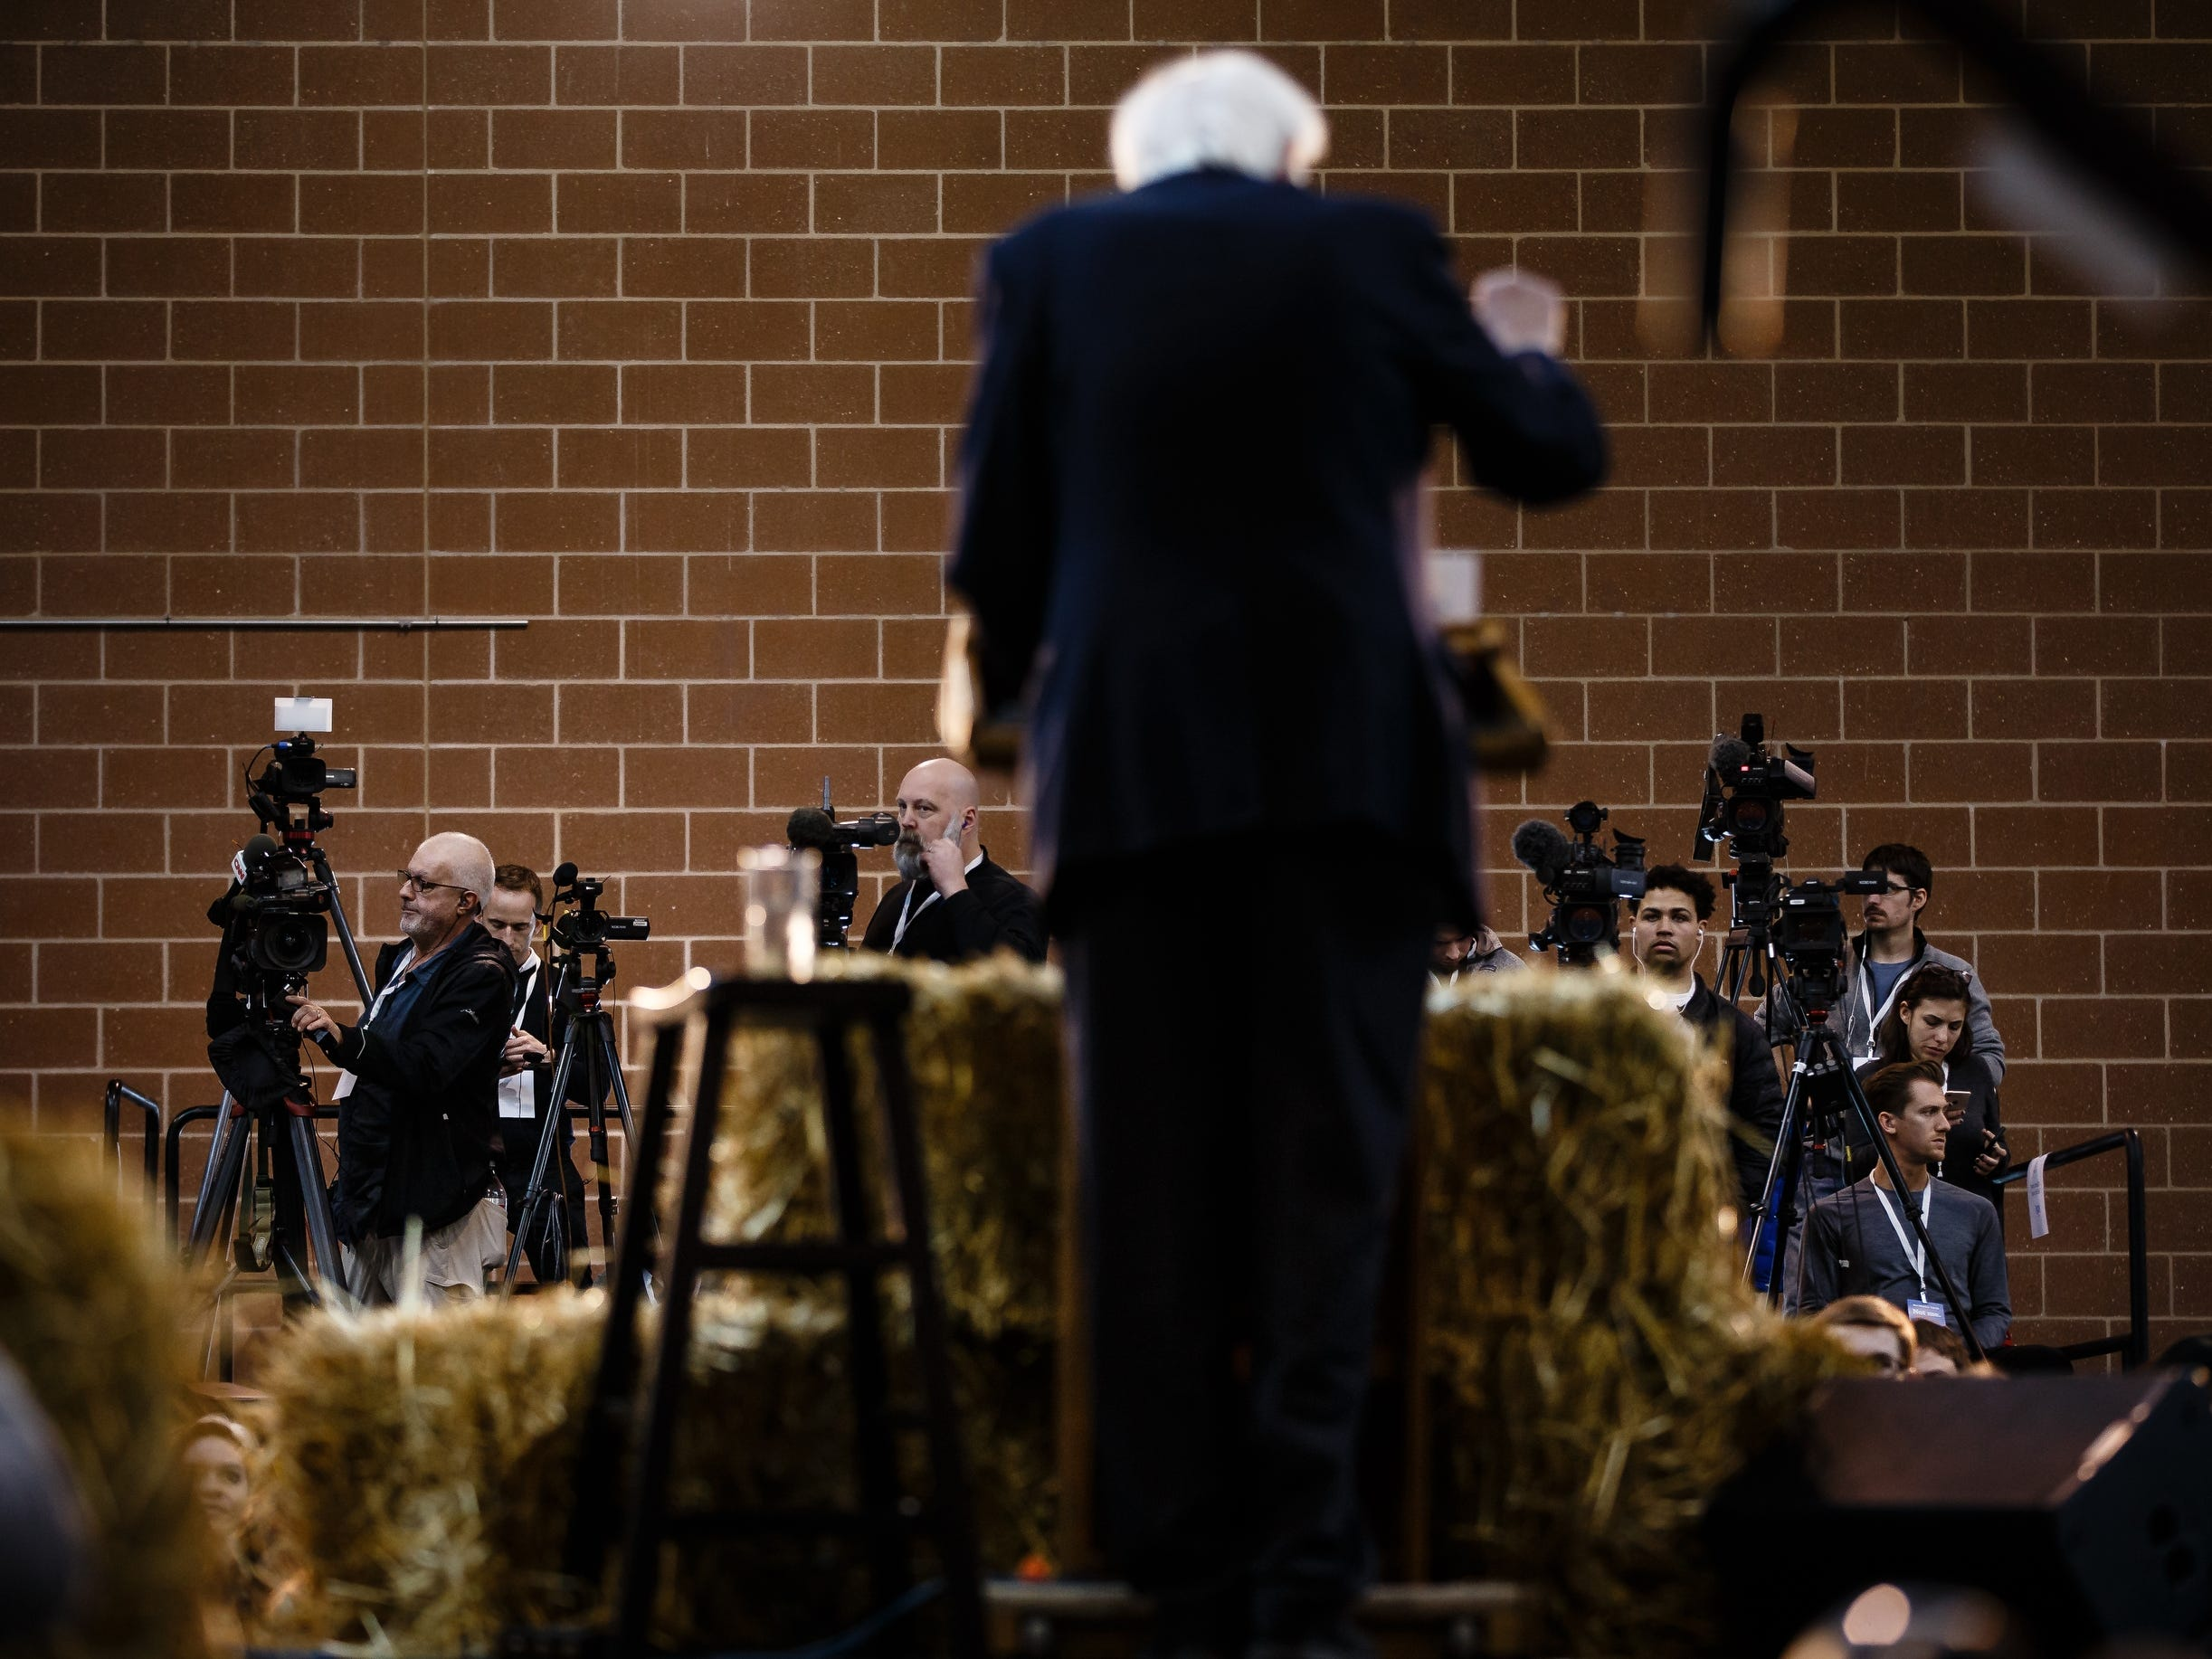 TV camera's record as Democratic presidential candidate Bernie Sanders speaks during a rally at the Iowa State Fairgrounds on Saturday, March 9, 2019 in Des Moines.